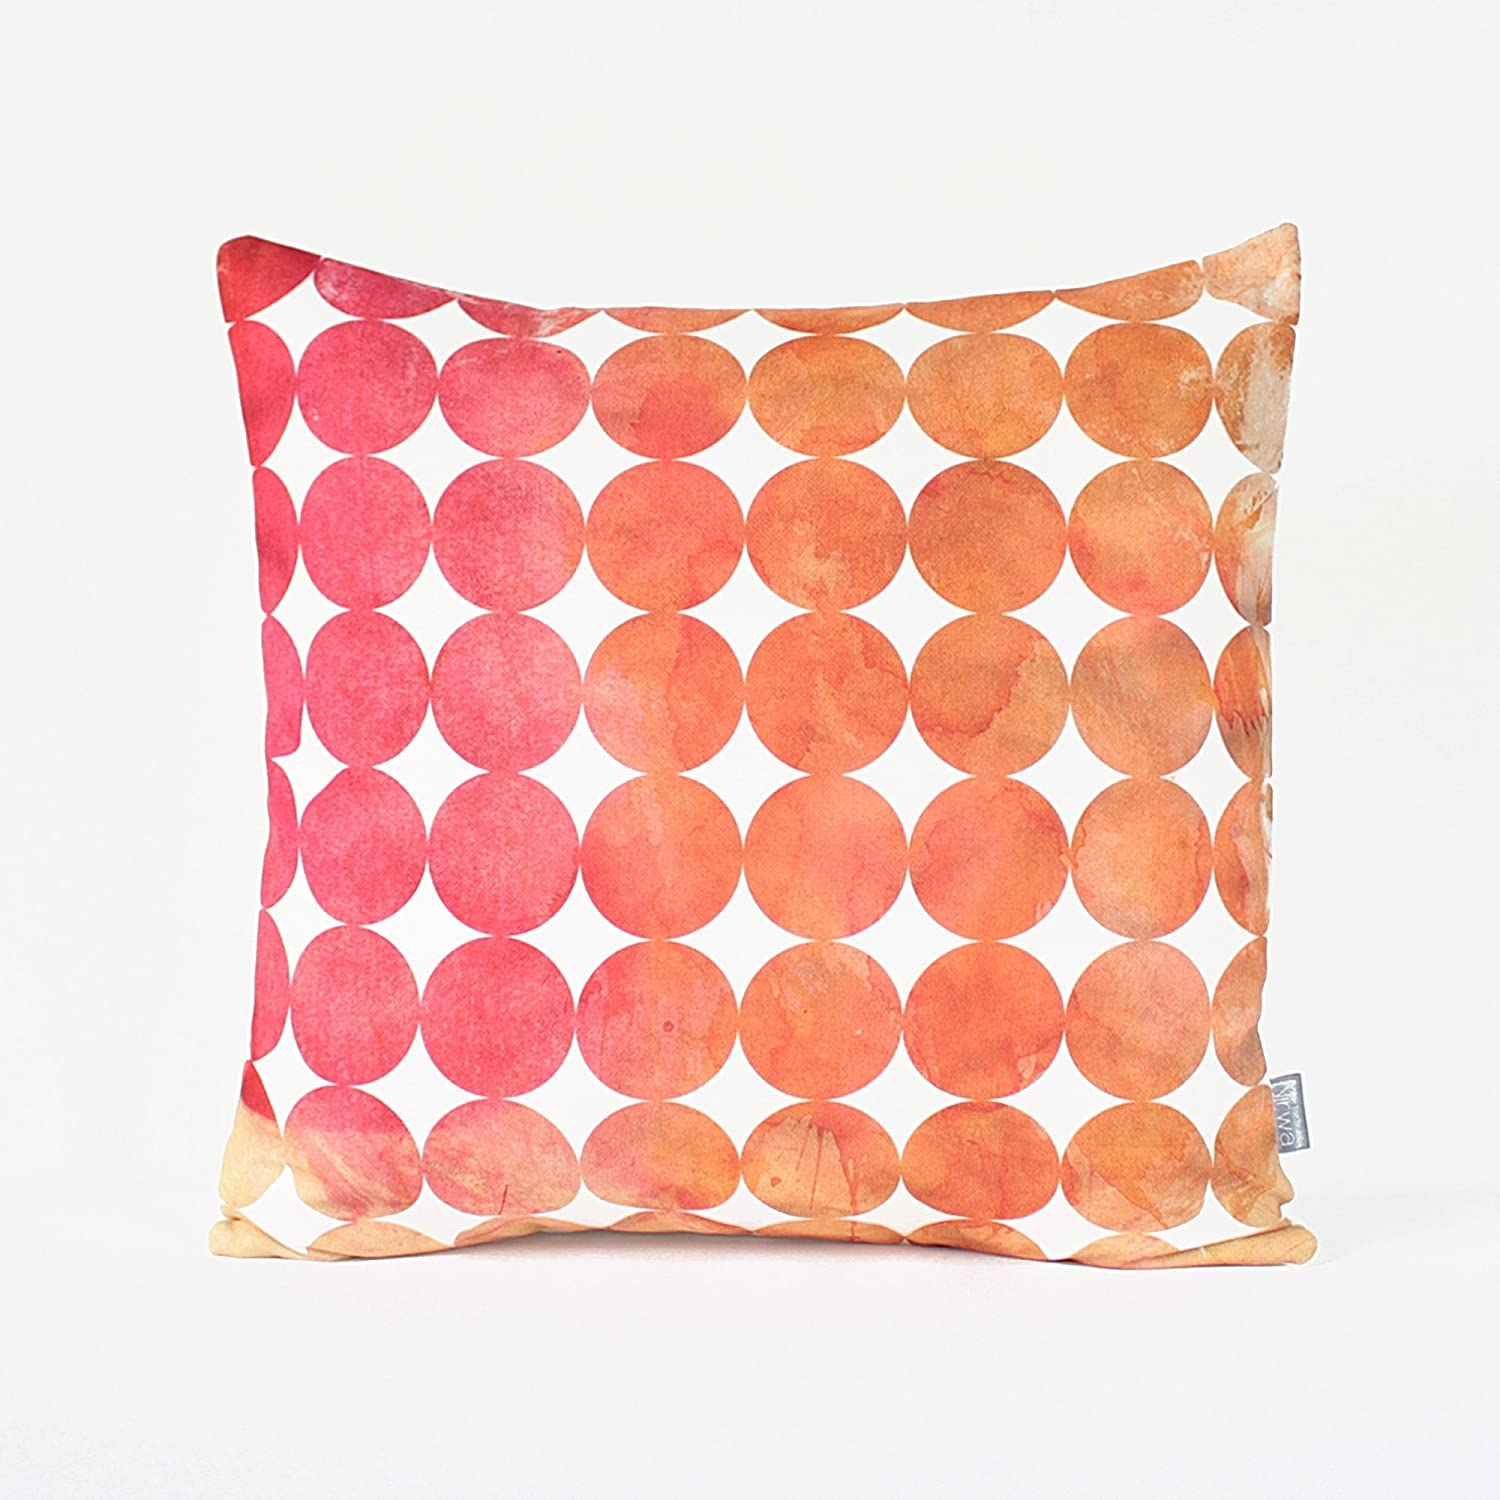 6004cc4922 Geometric Circle Pillow Cover in Pink, Orange / Pink Watercolor Pillow /  Pink Geometric Cushion / Circle Pillow / Modern Pillow / 18